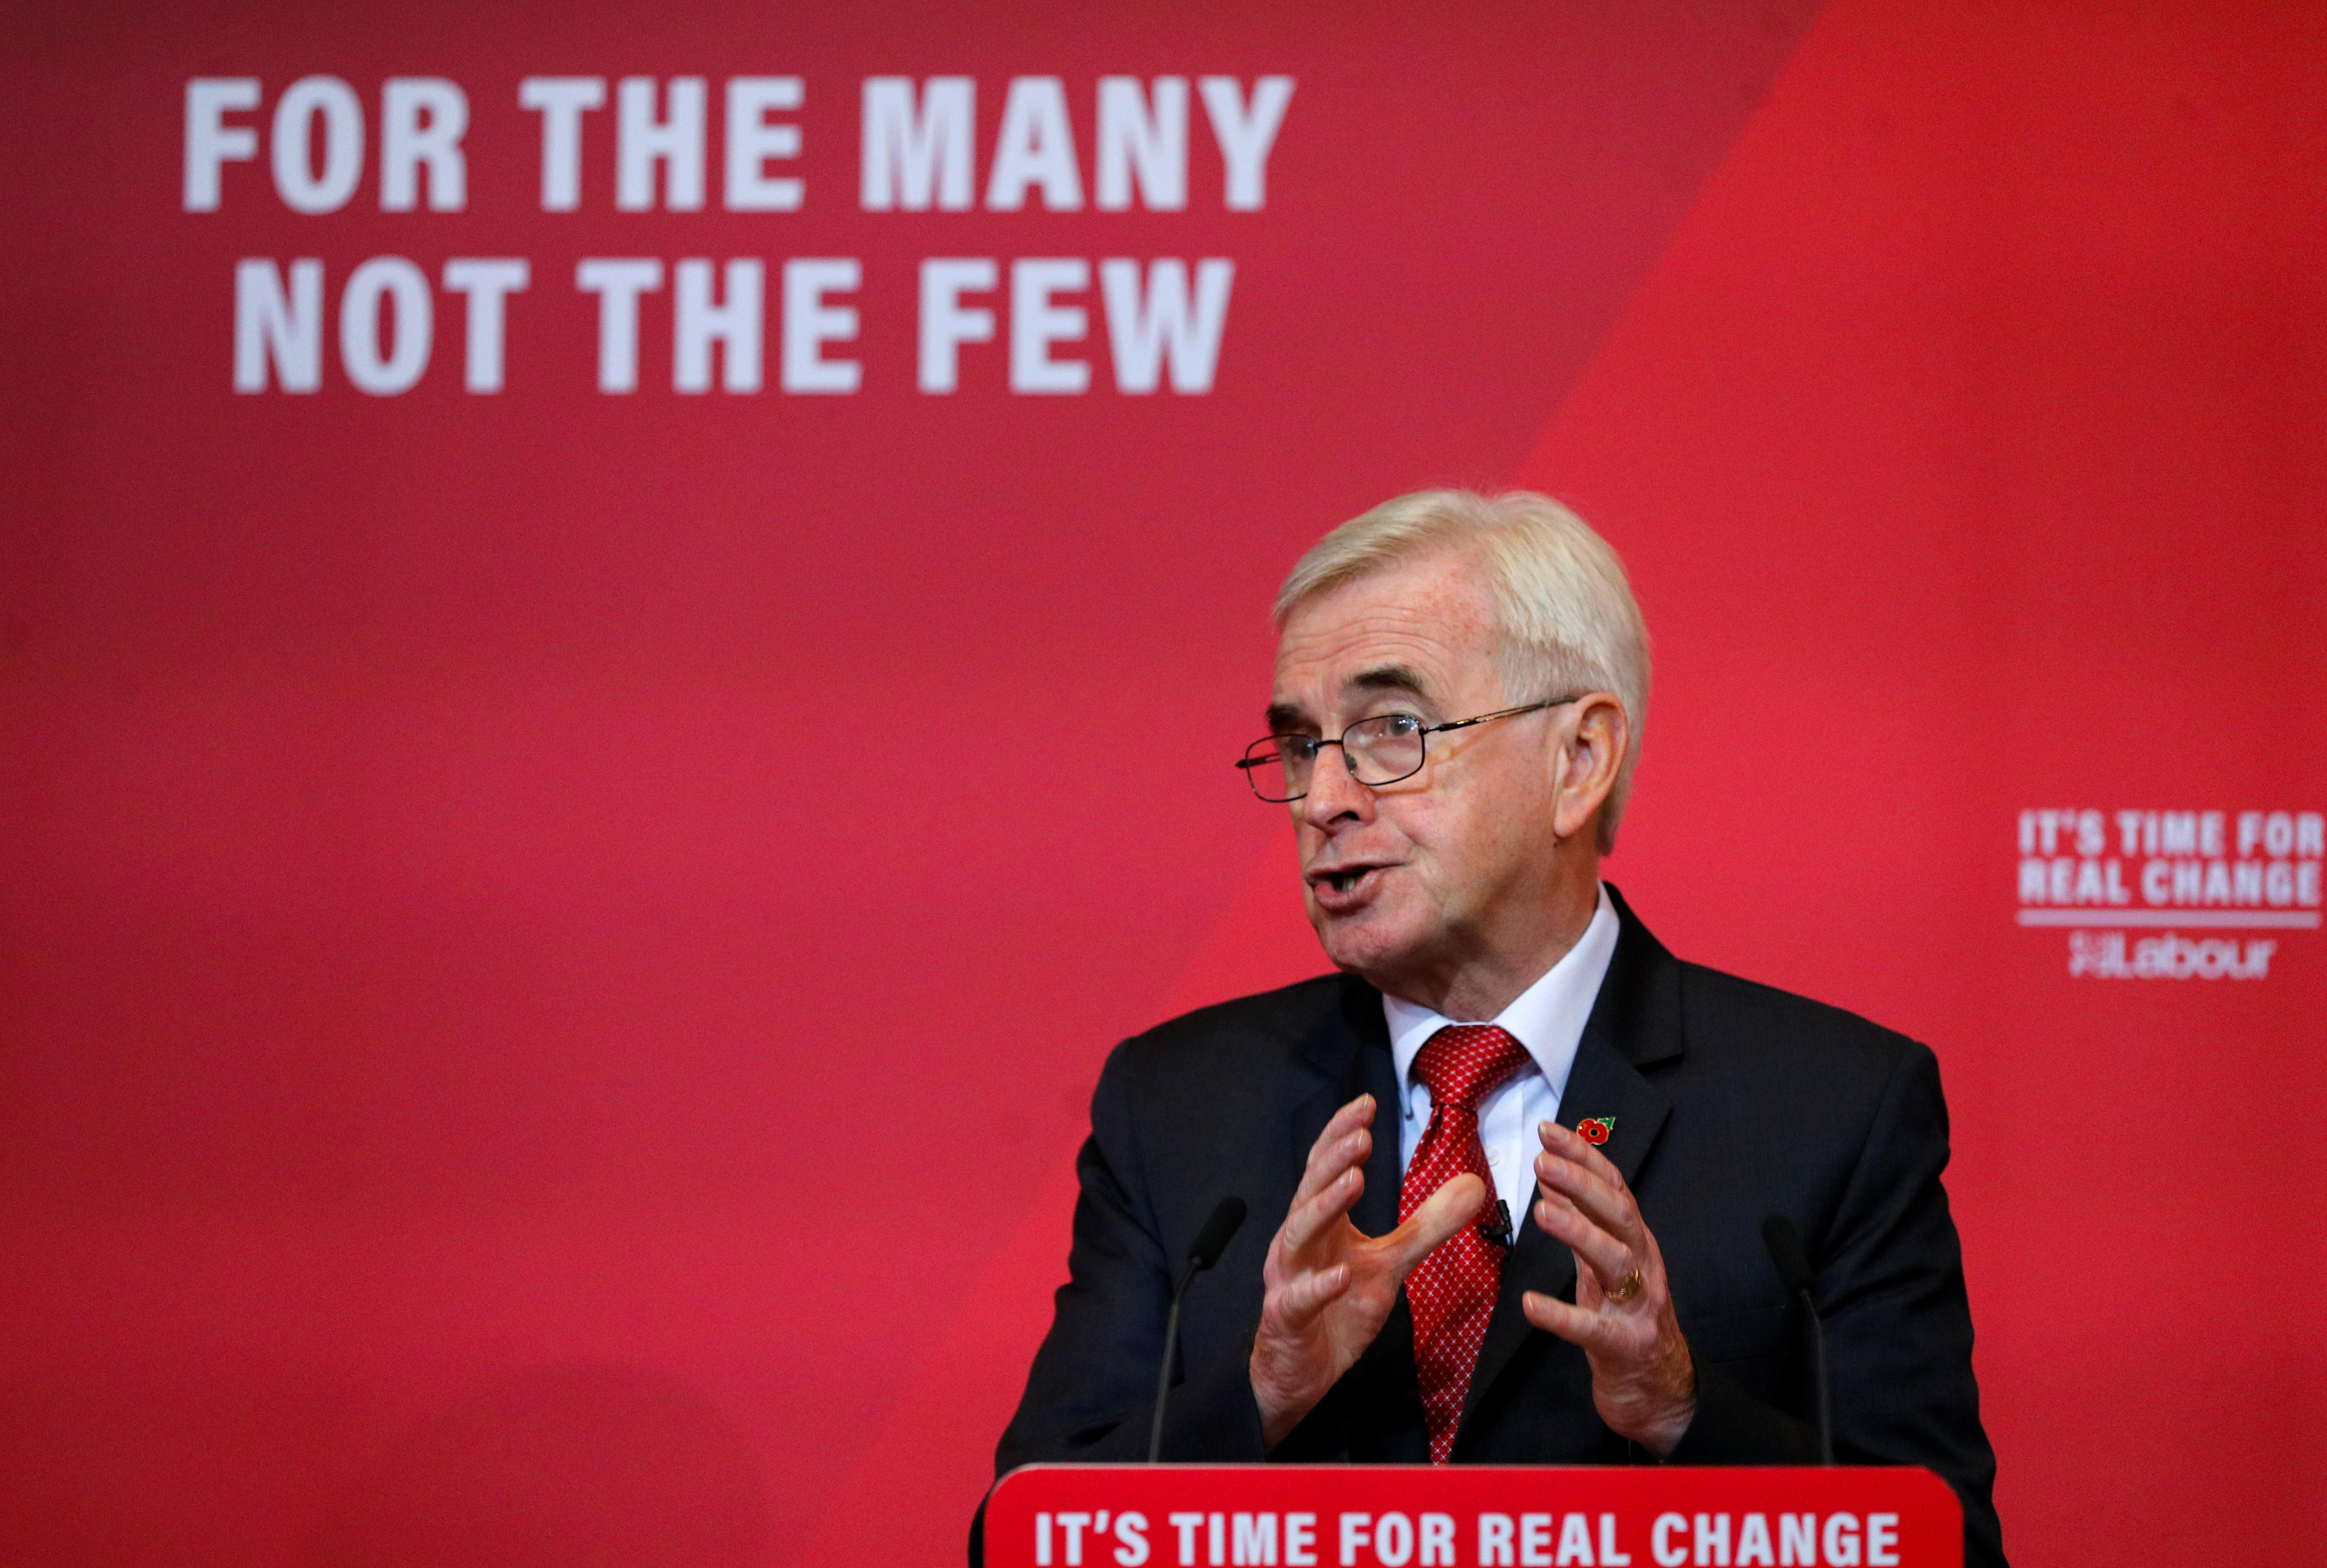 Households could save £6,700 under Labour, party claims